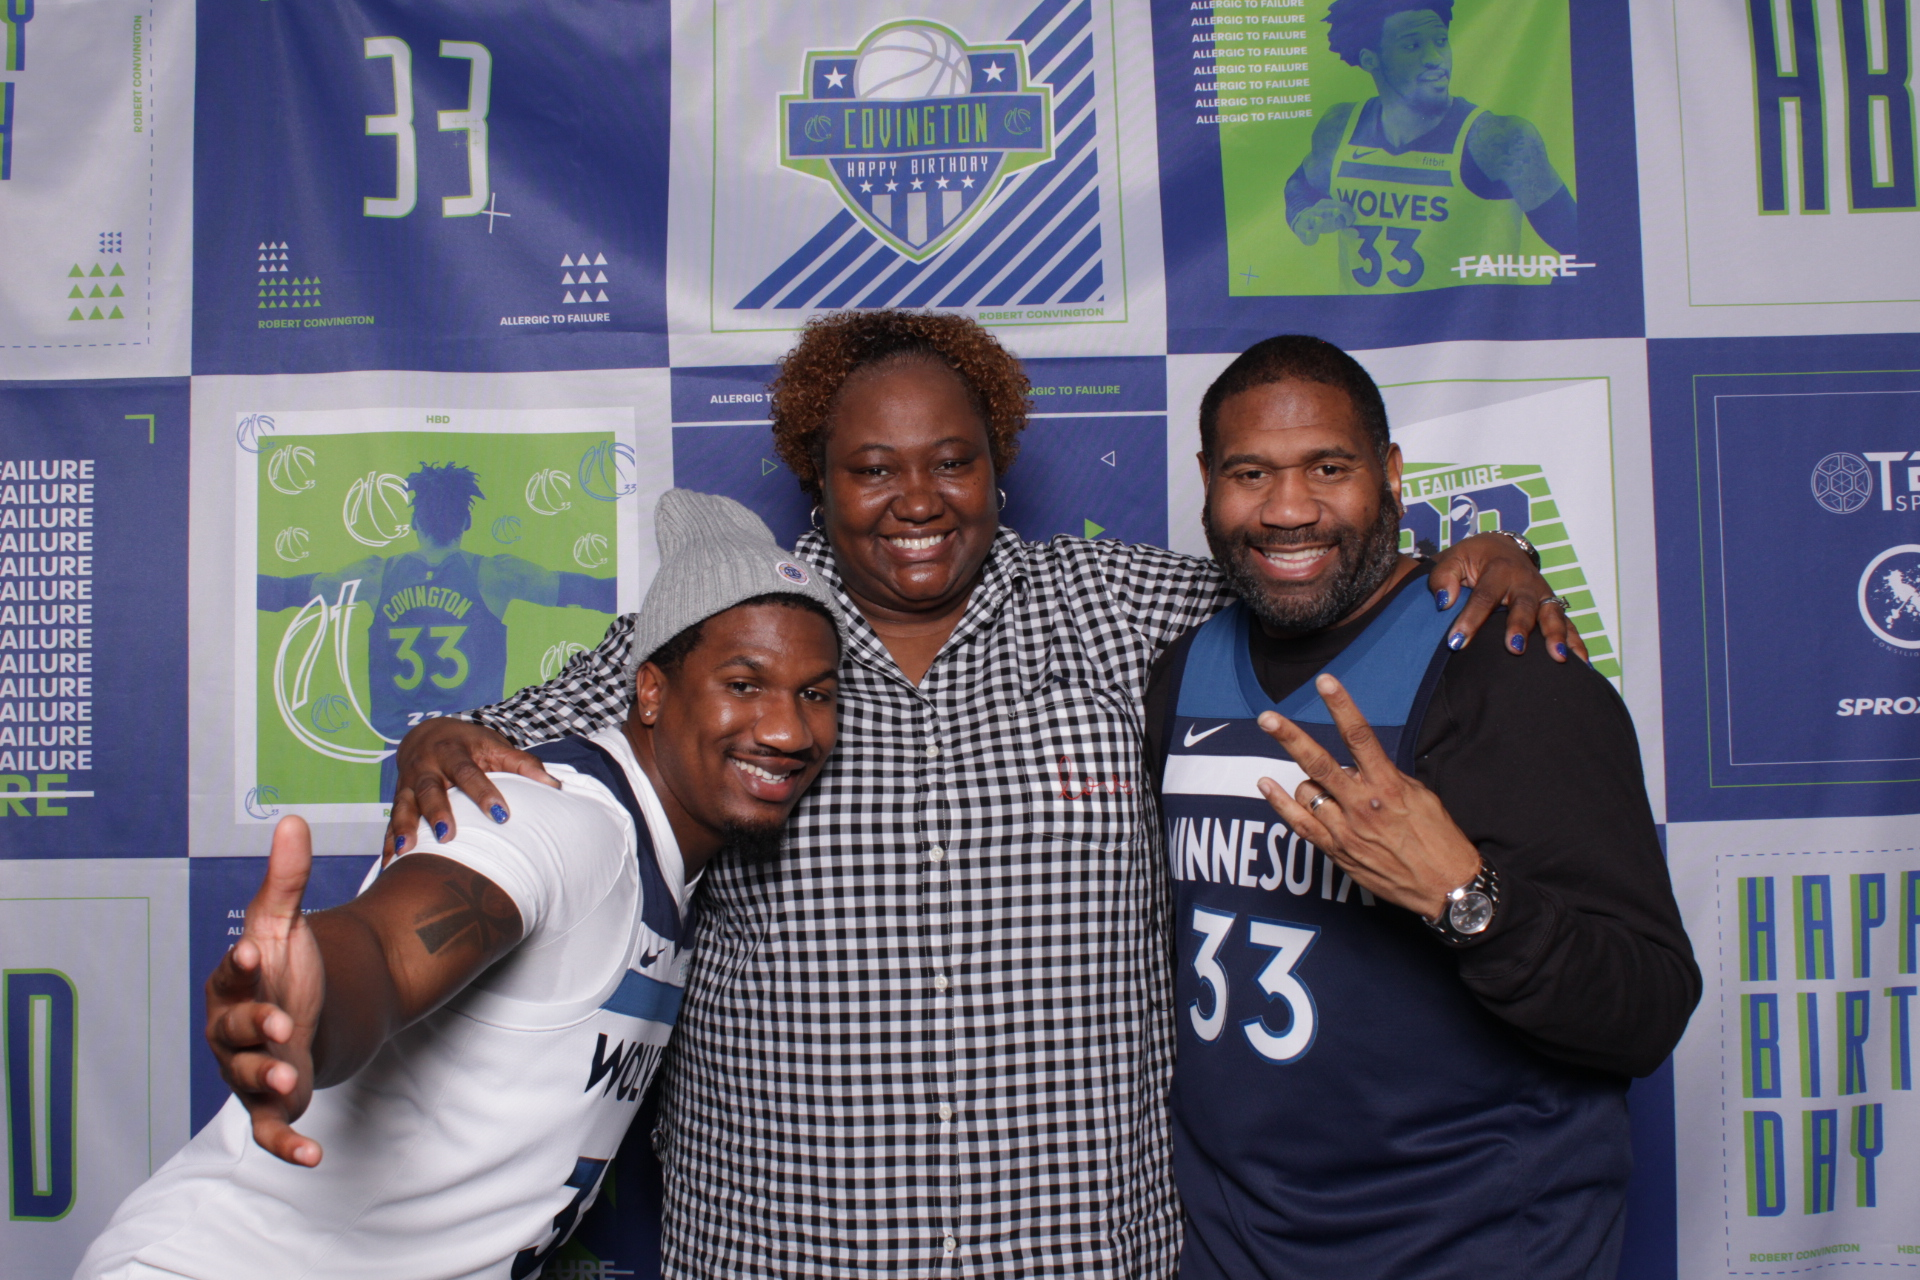 Minneapolis St Paul photo booth rentals for NBA